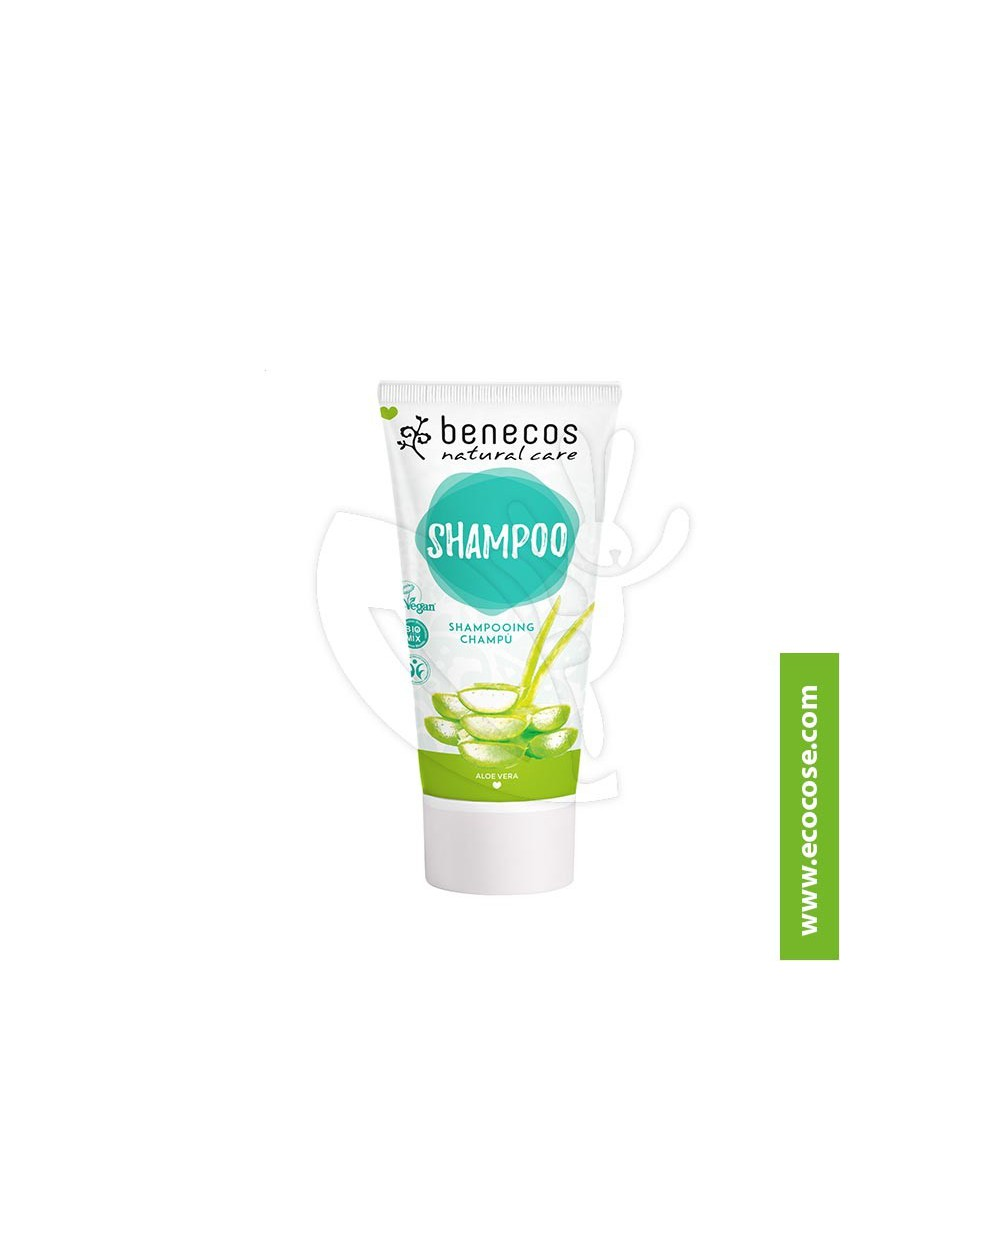 Benecos Natural Care - Shampoo - Aloe Vera